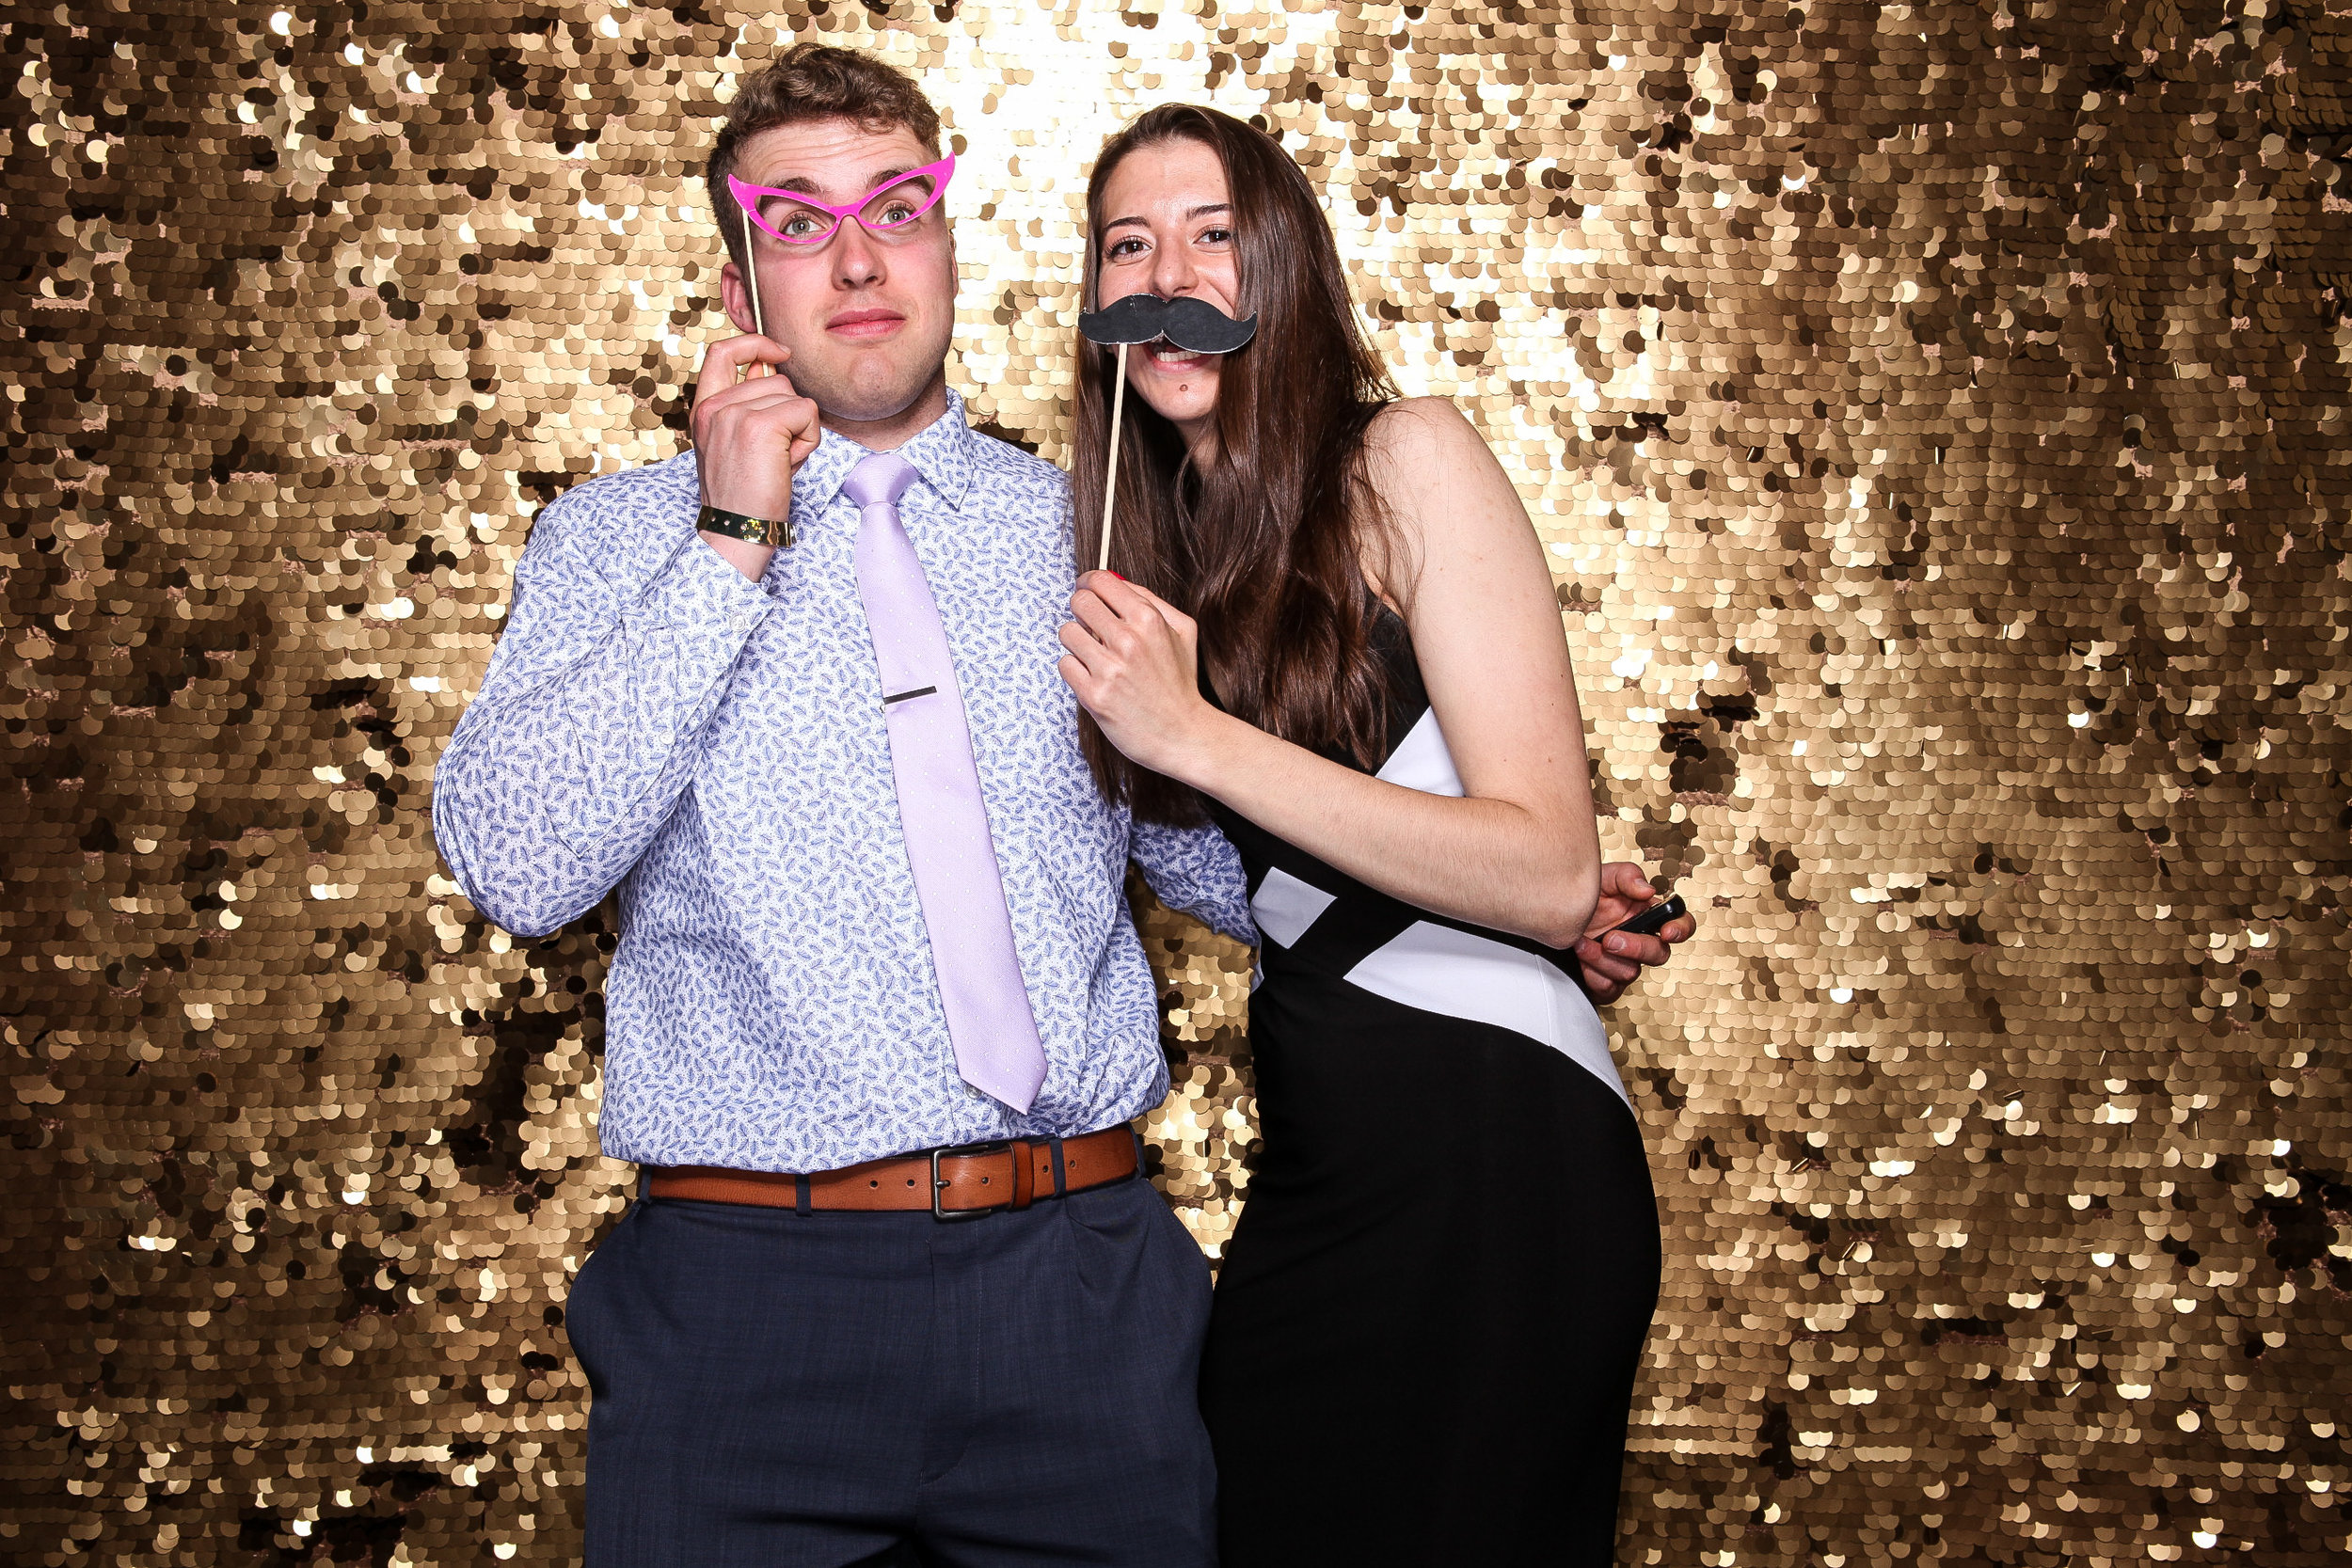 20190503_Adelphi_Senior_Formal-244.jpg